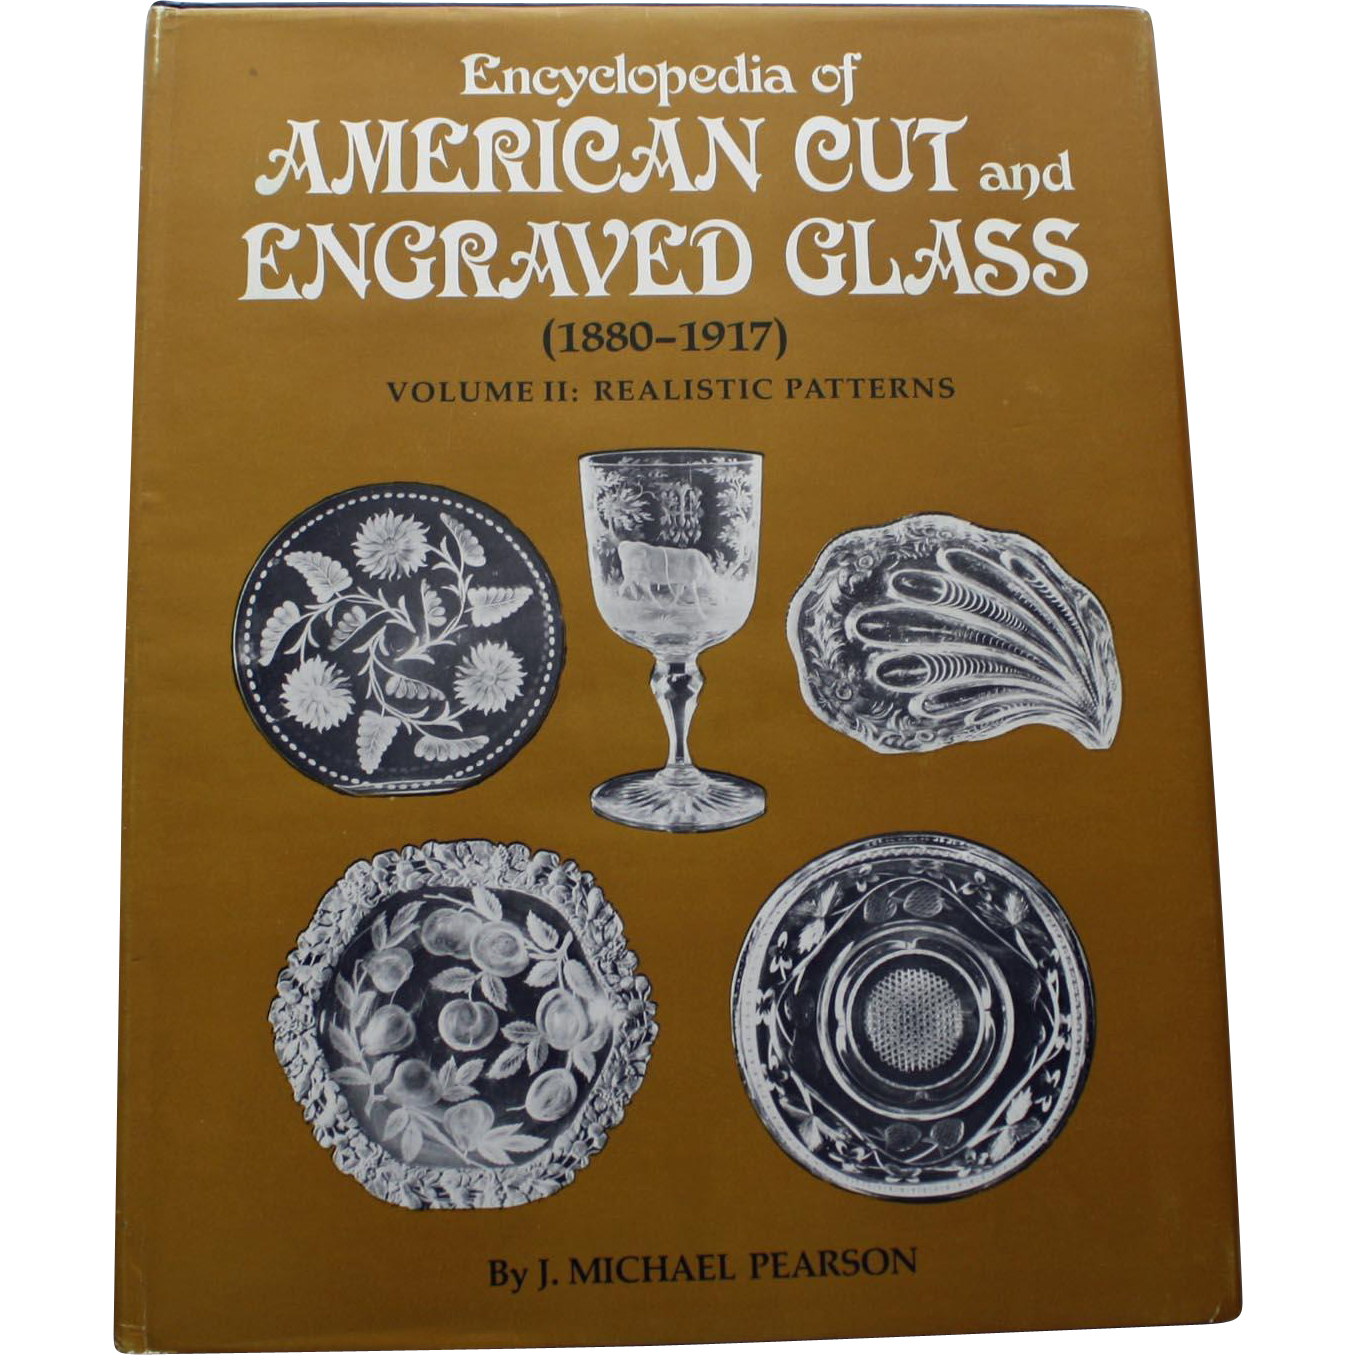 Encyclopedia of American Cut and Engraved Glass (vol. 2) by J. Michael Pearson - Realistic Patterns